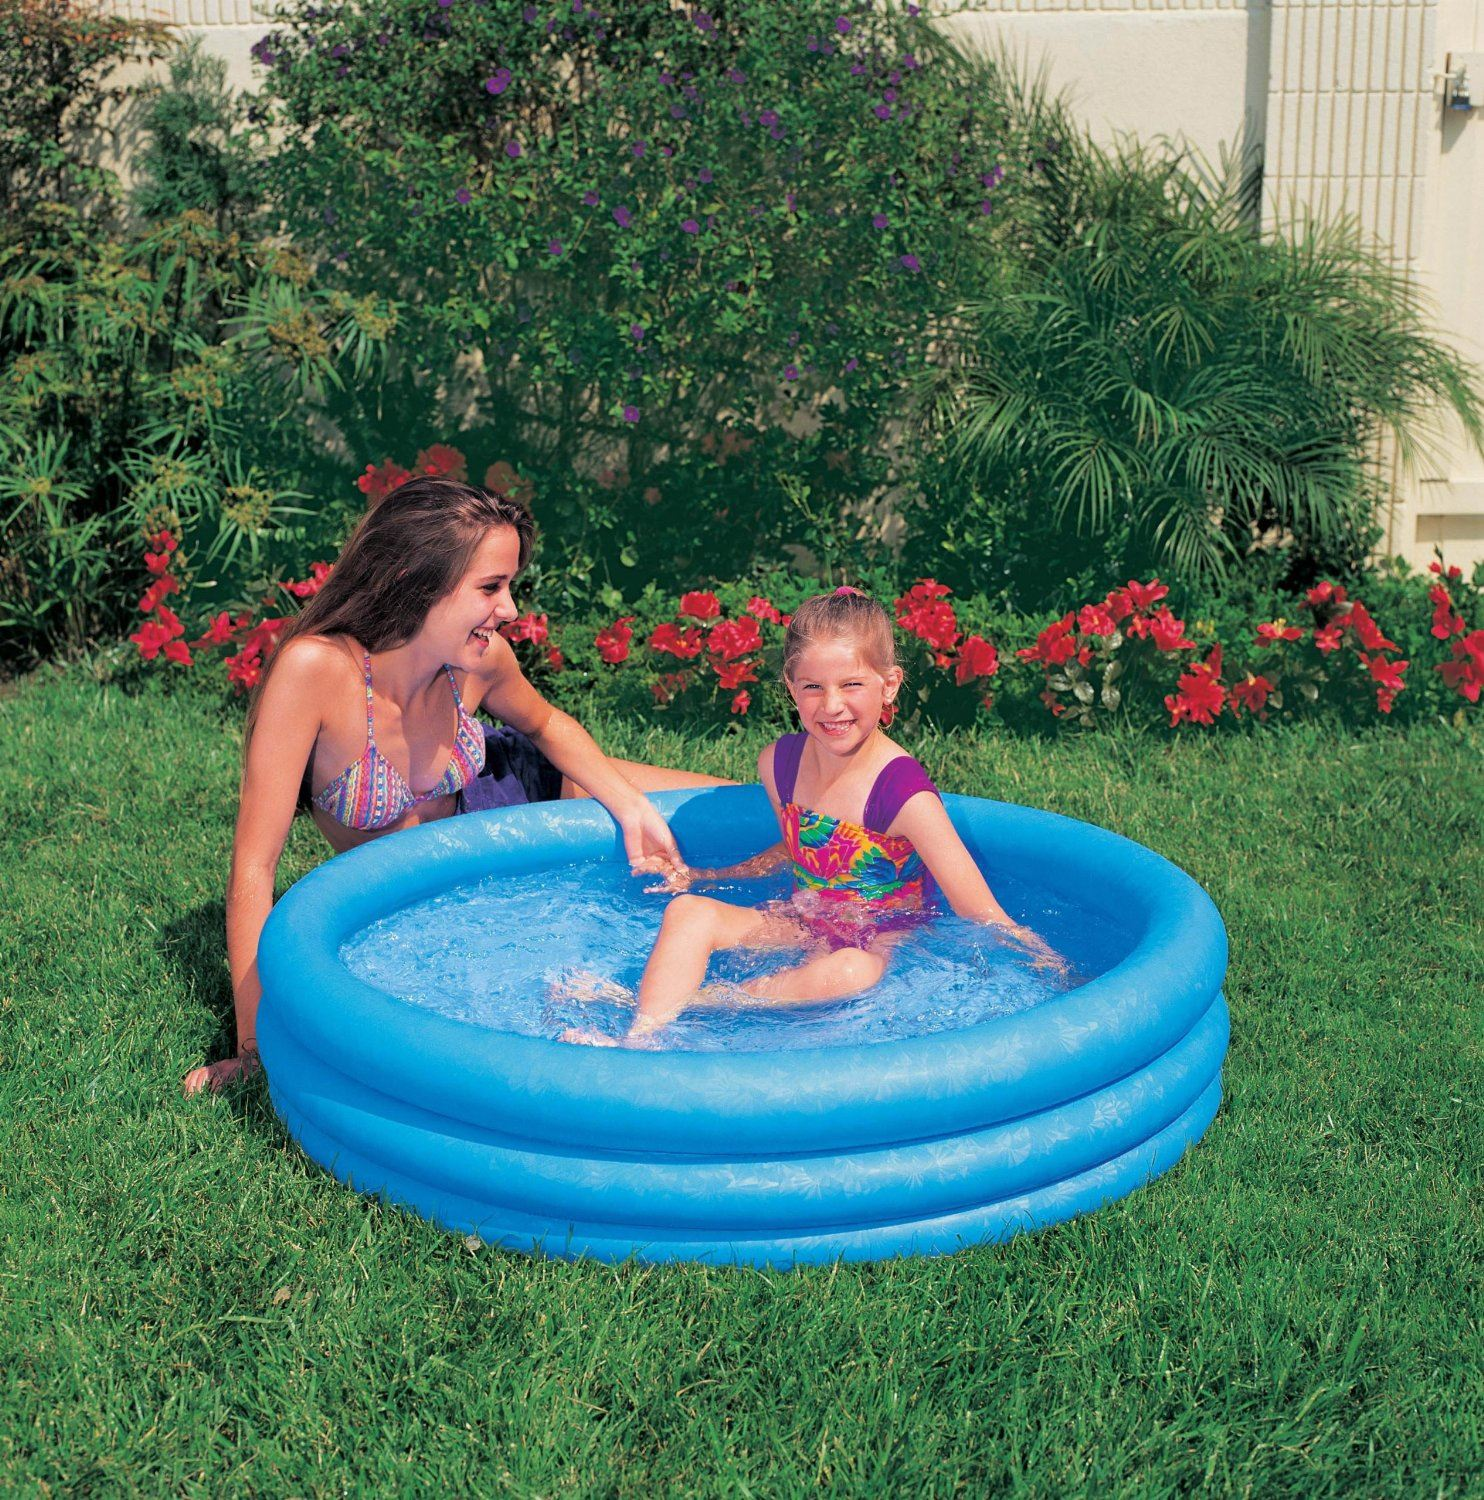 Inflatable Pool Slide Uk: Paddling Pool Kids Swimming Pools Inflatable Childrens